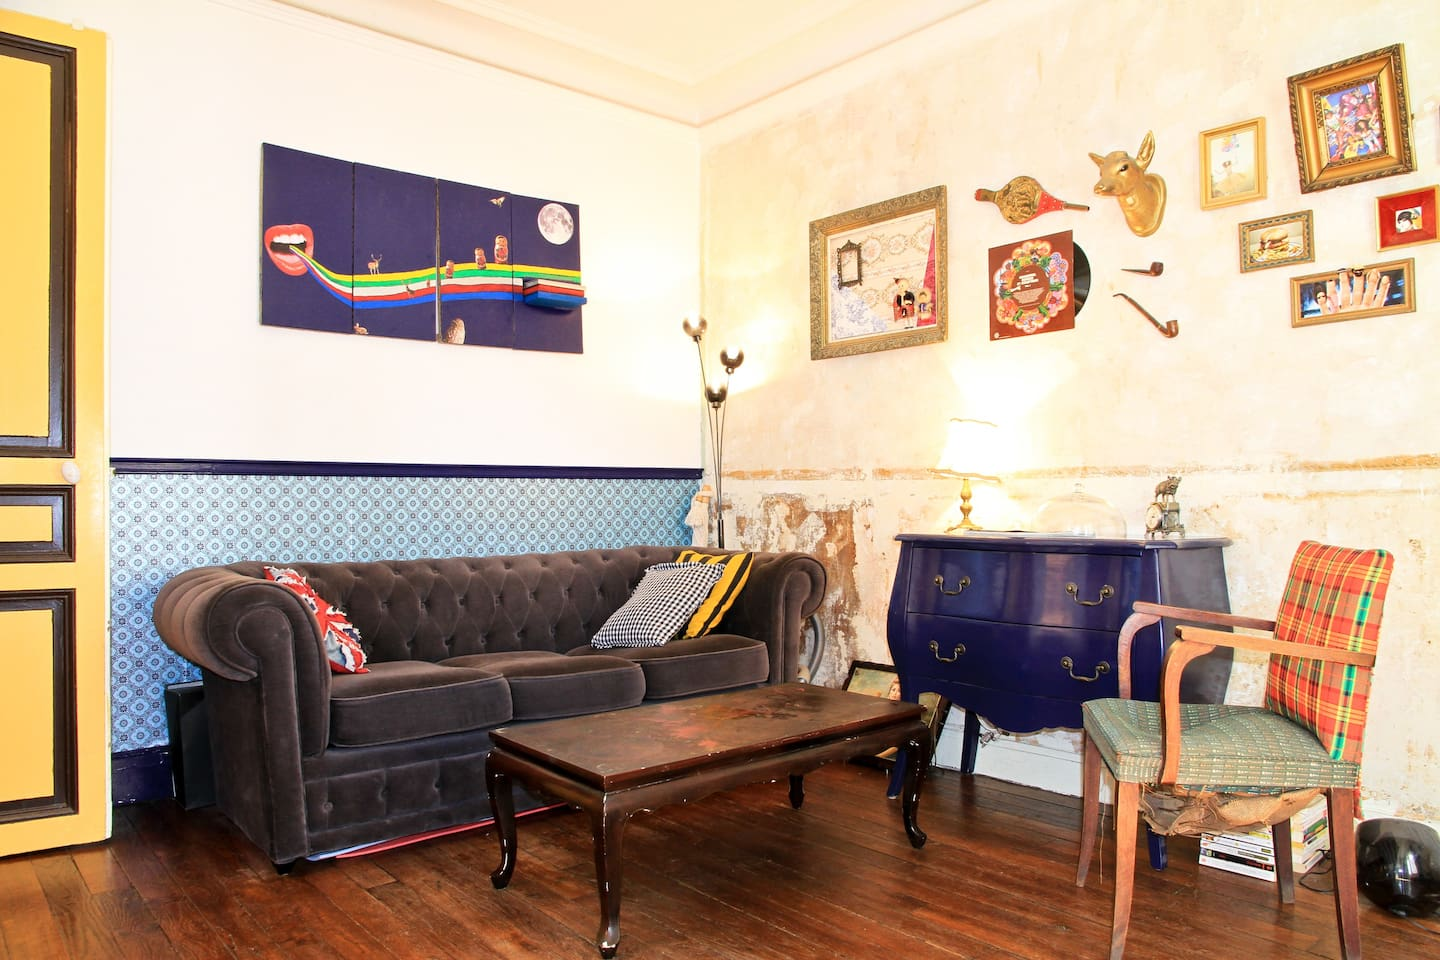 Chit-Chat area - the Chesterfield experience  : )